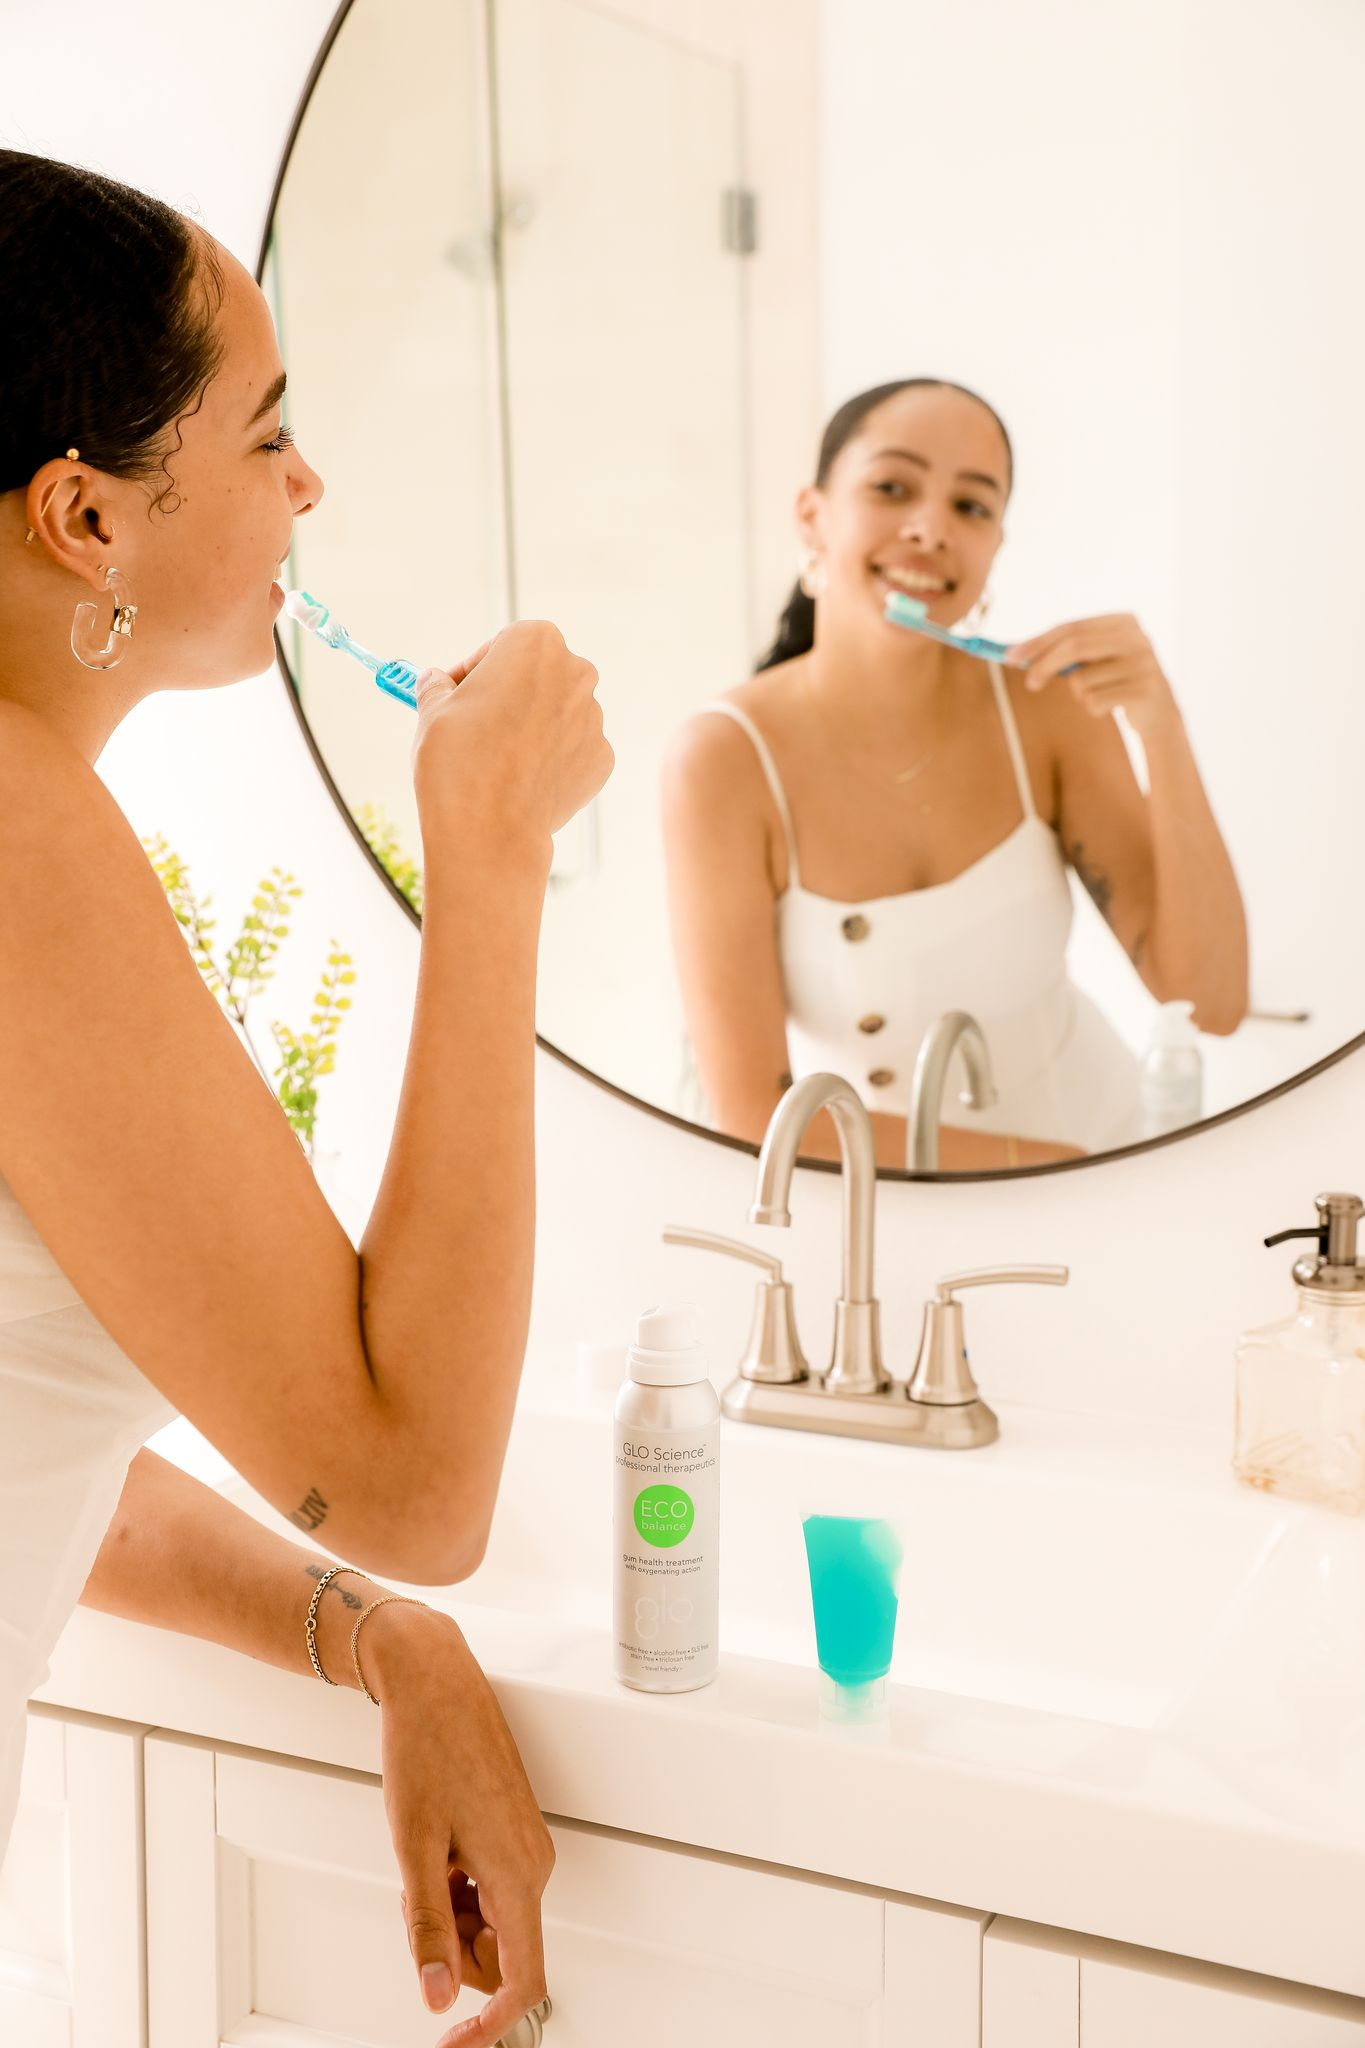 Smiling woman brushing her teeth in front of a mirror with a bottle of Eco Balance Oral Health Booster.